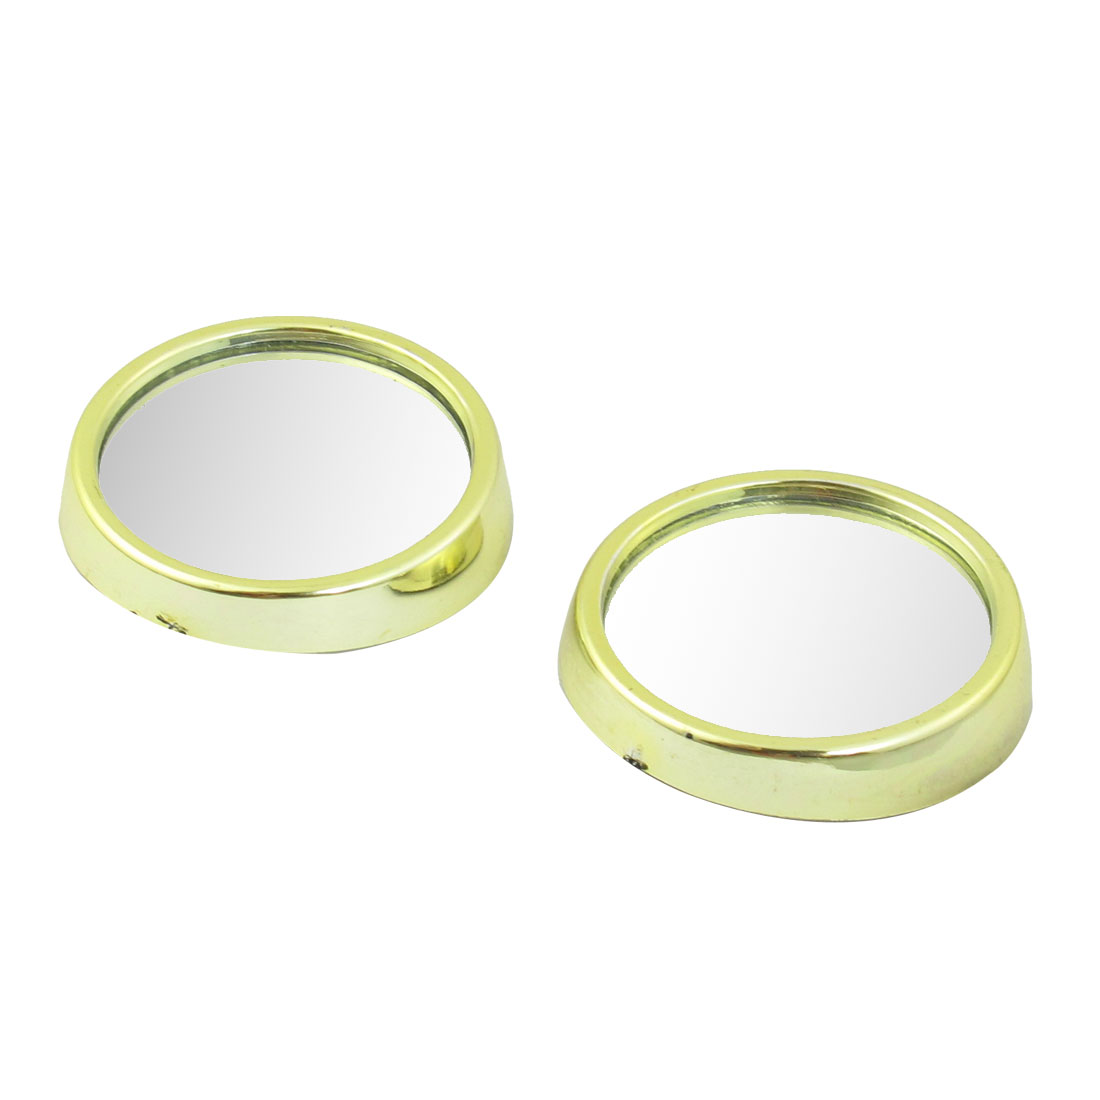 2 Pcs Car Gold Tone Plastic Frame Wide Angle Round Blind Spot Mirror 47mmx12mm